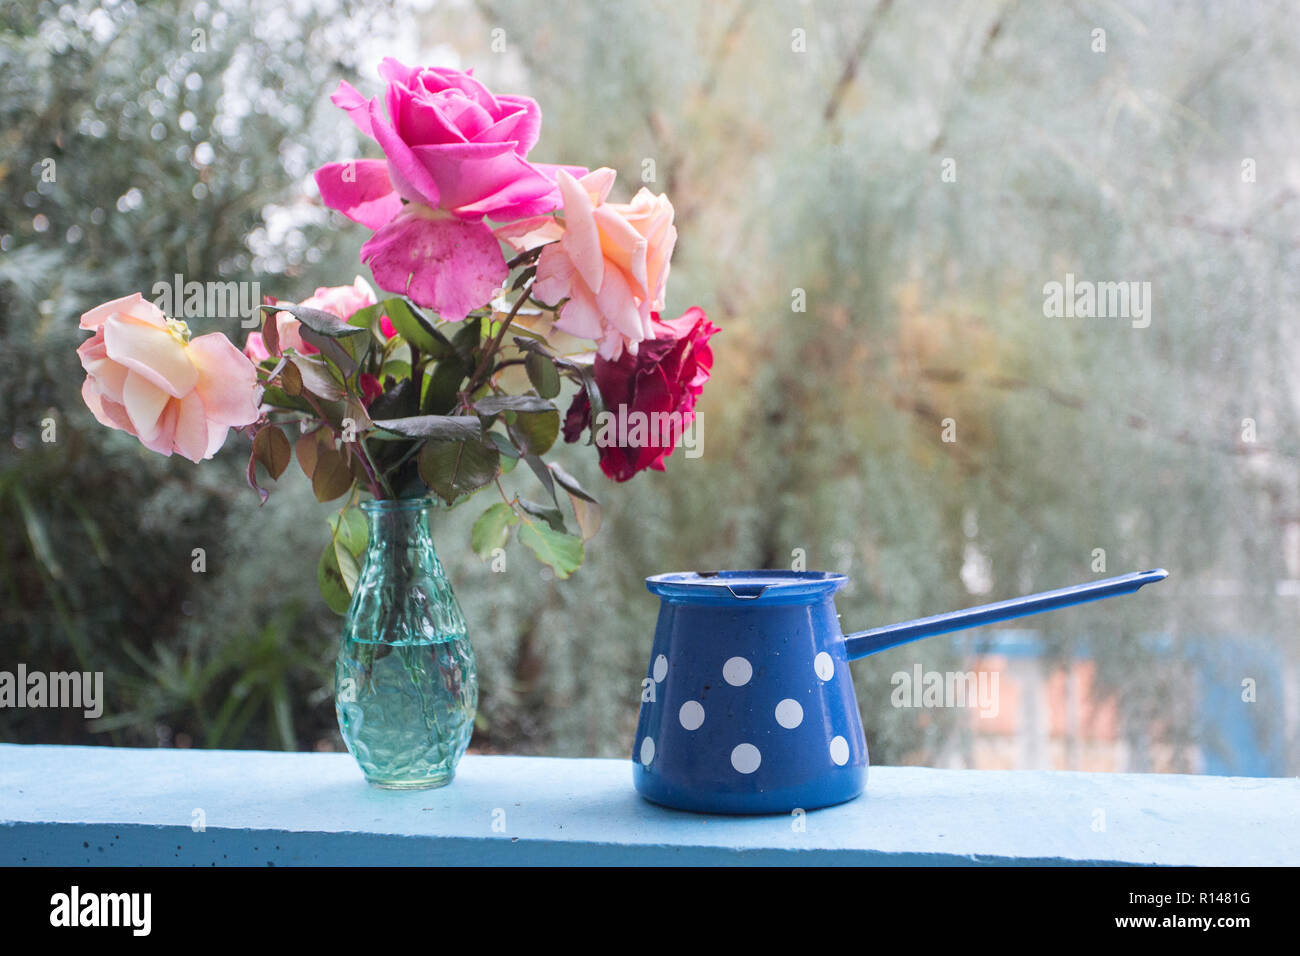 Enjoy some free time on the terrace with roses bouquet - Stock Image